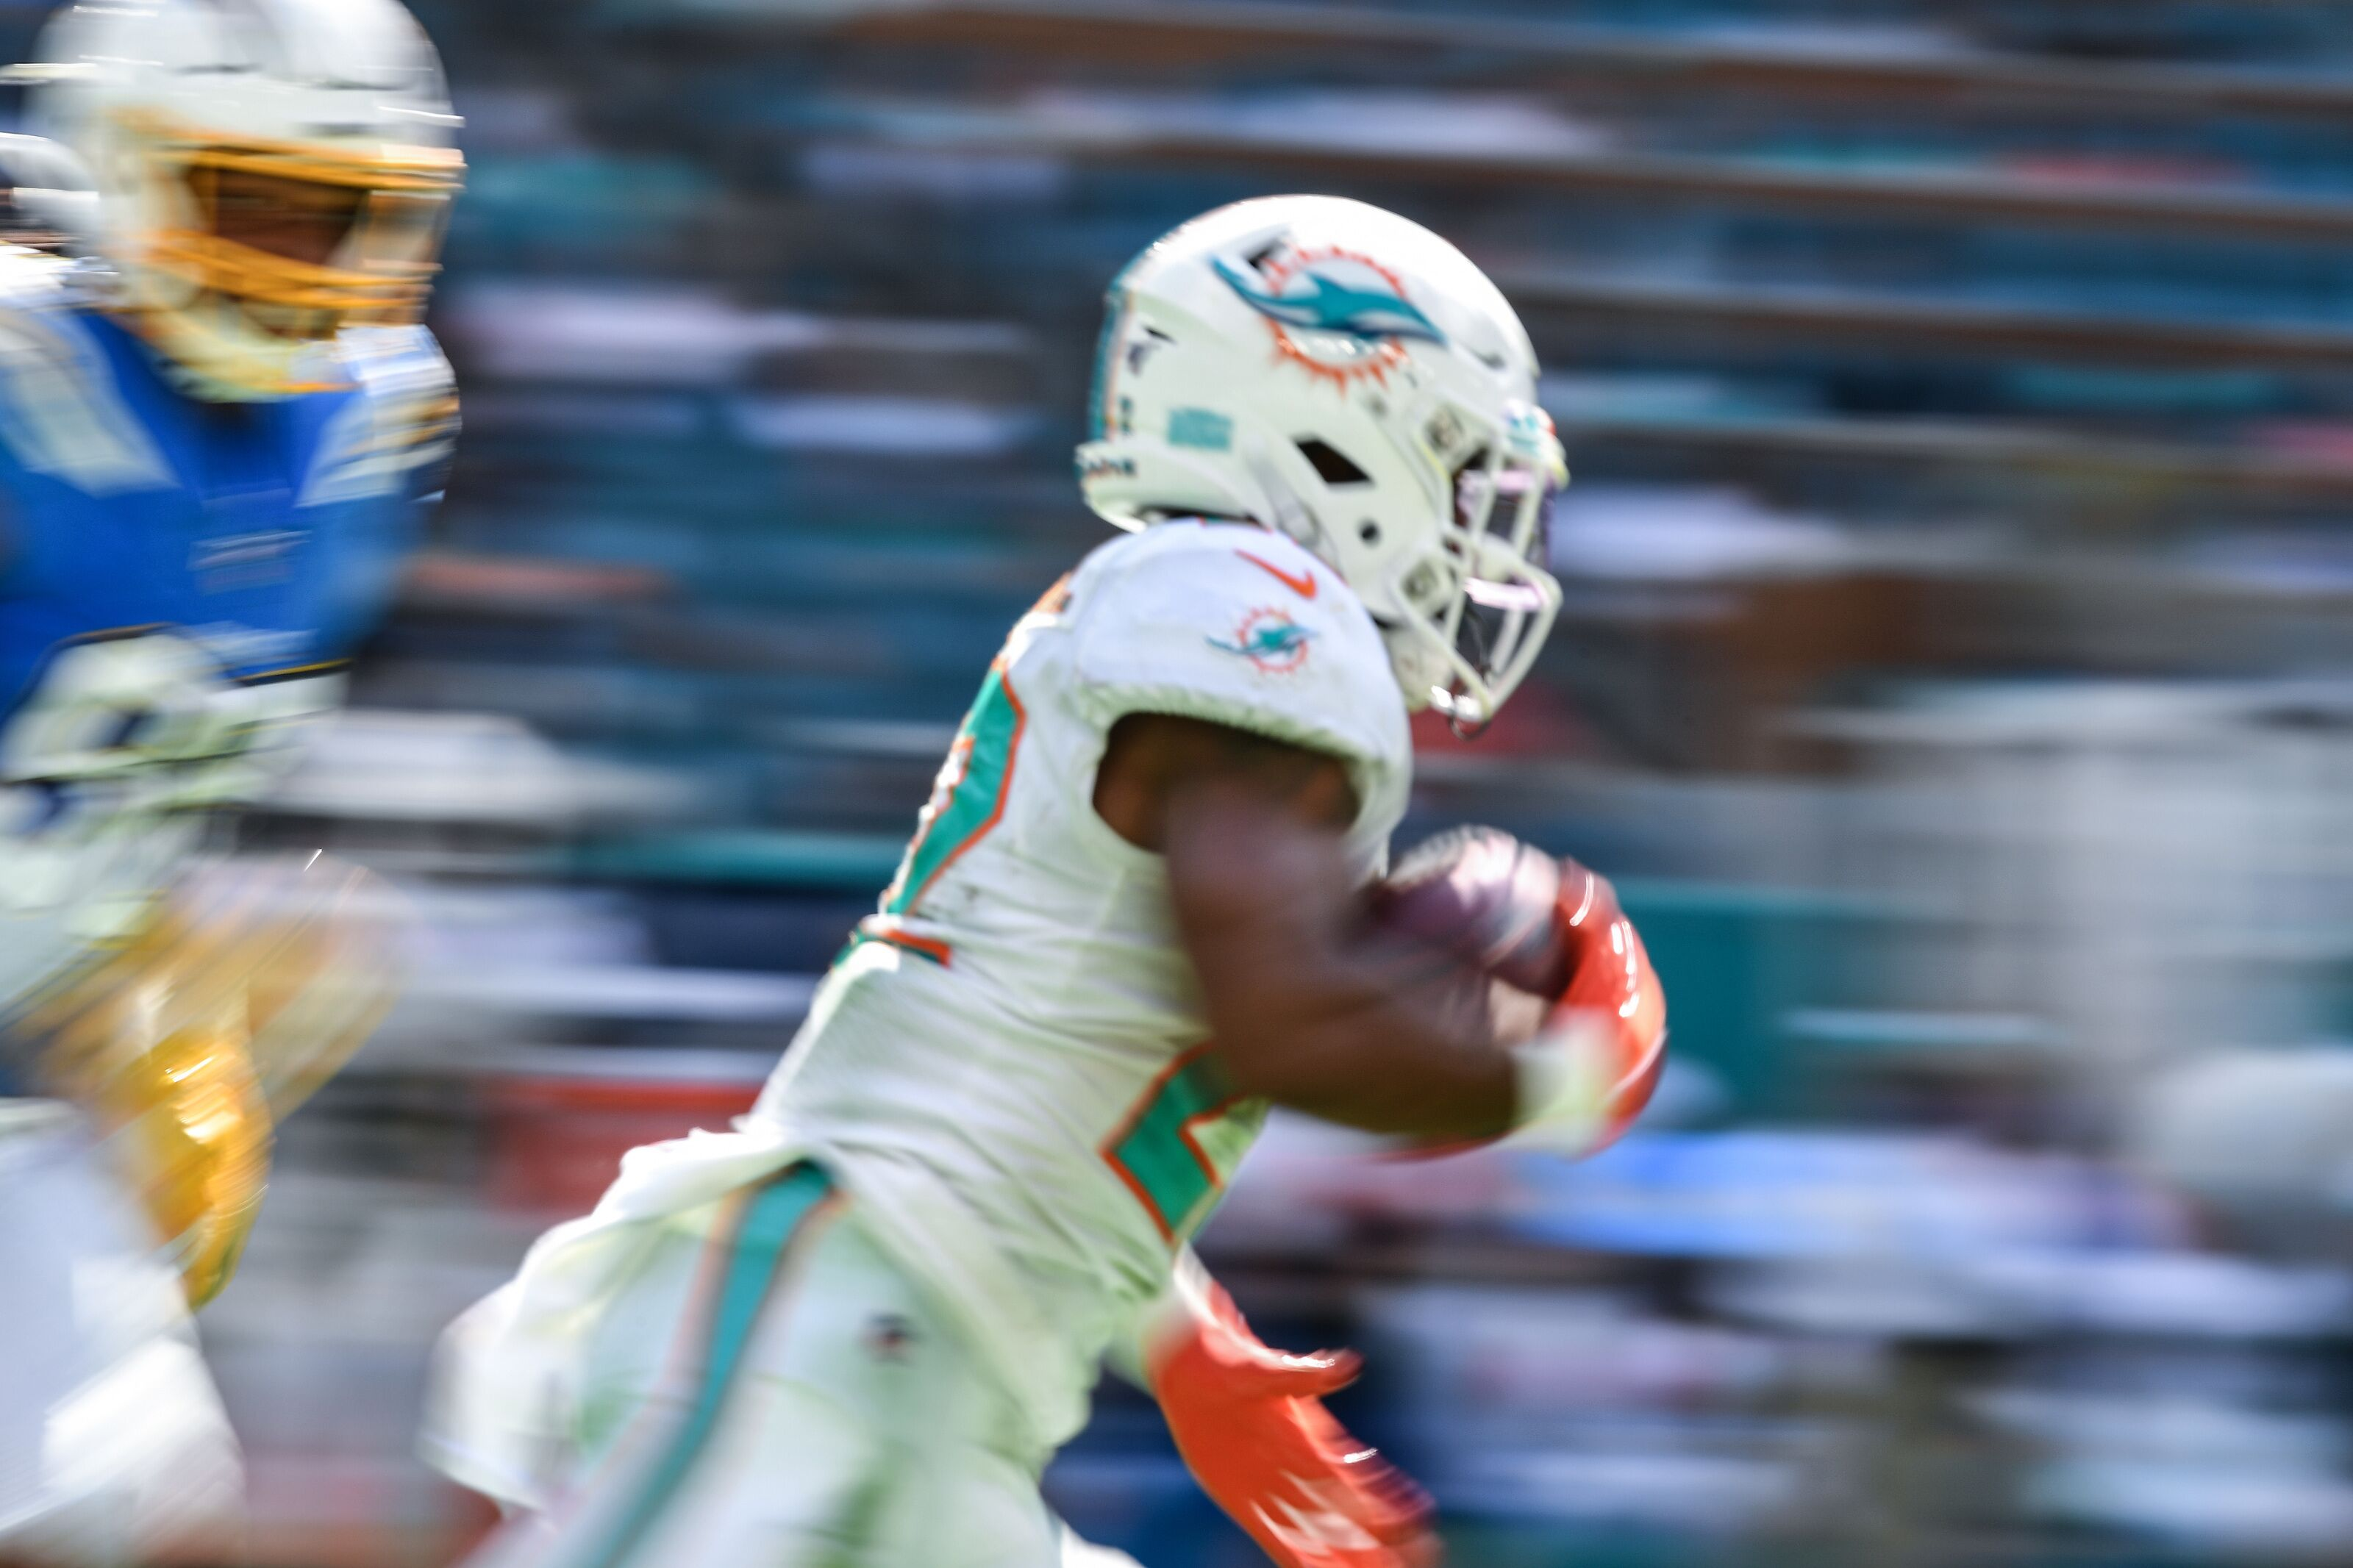 Miami Dolphins running back Mark Walton arrested and waived